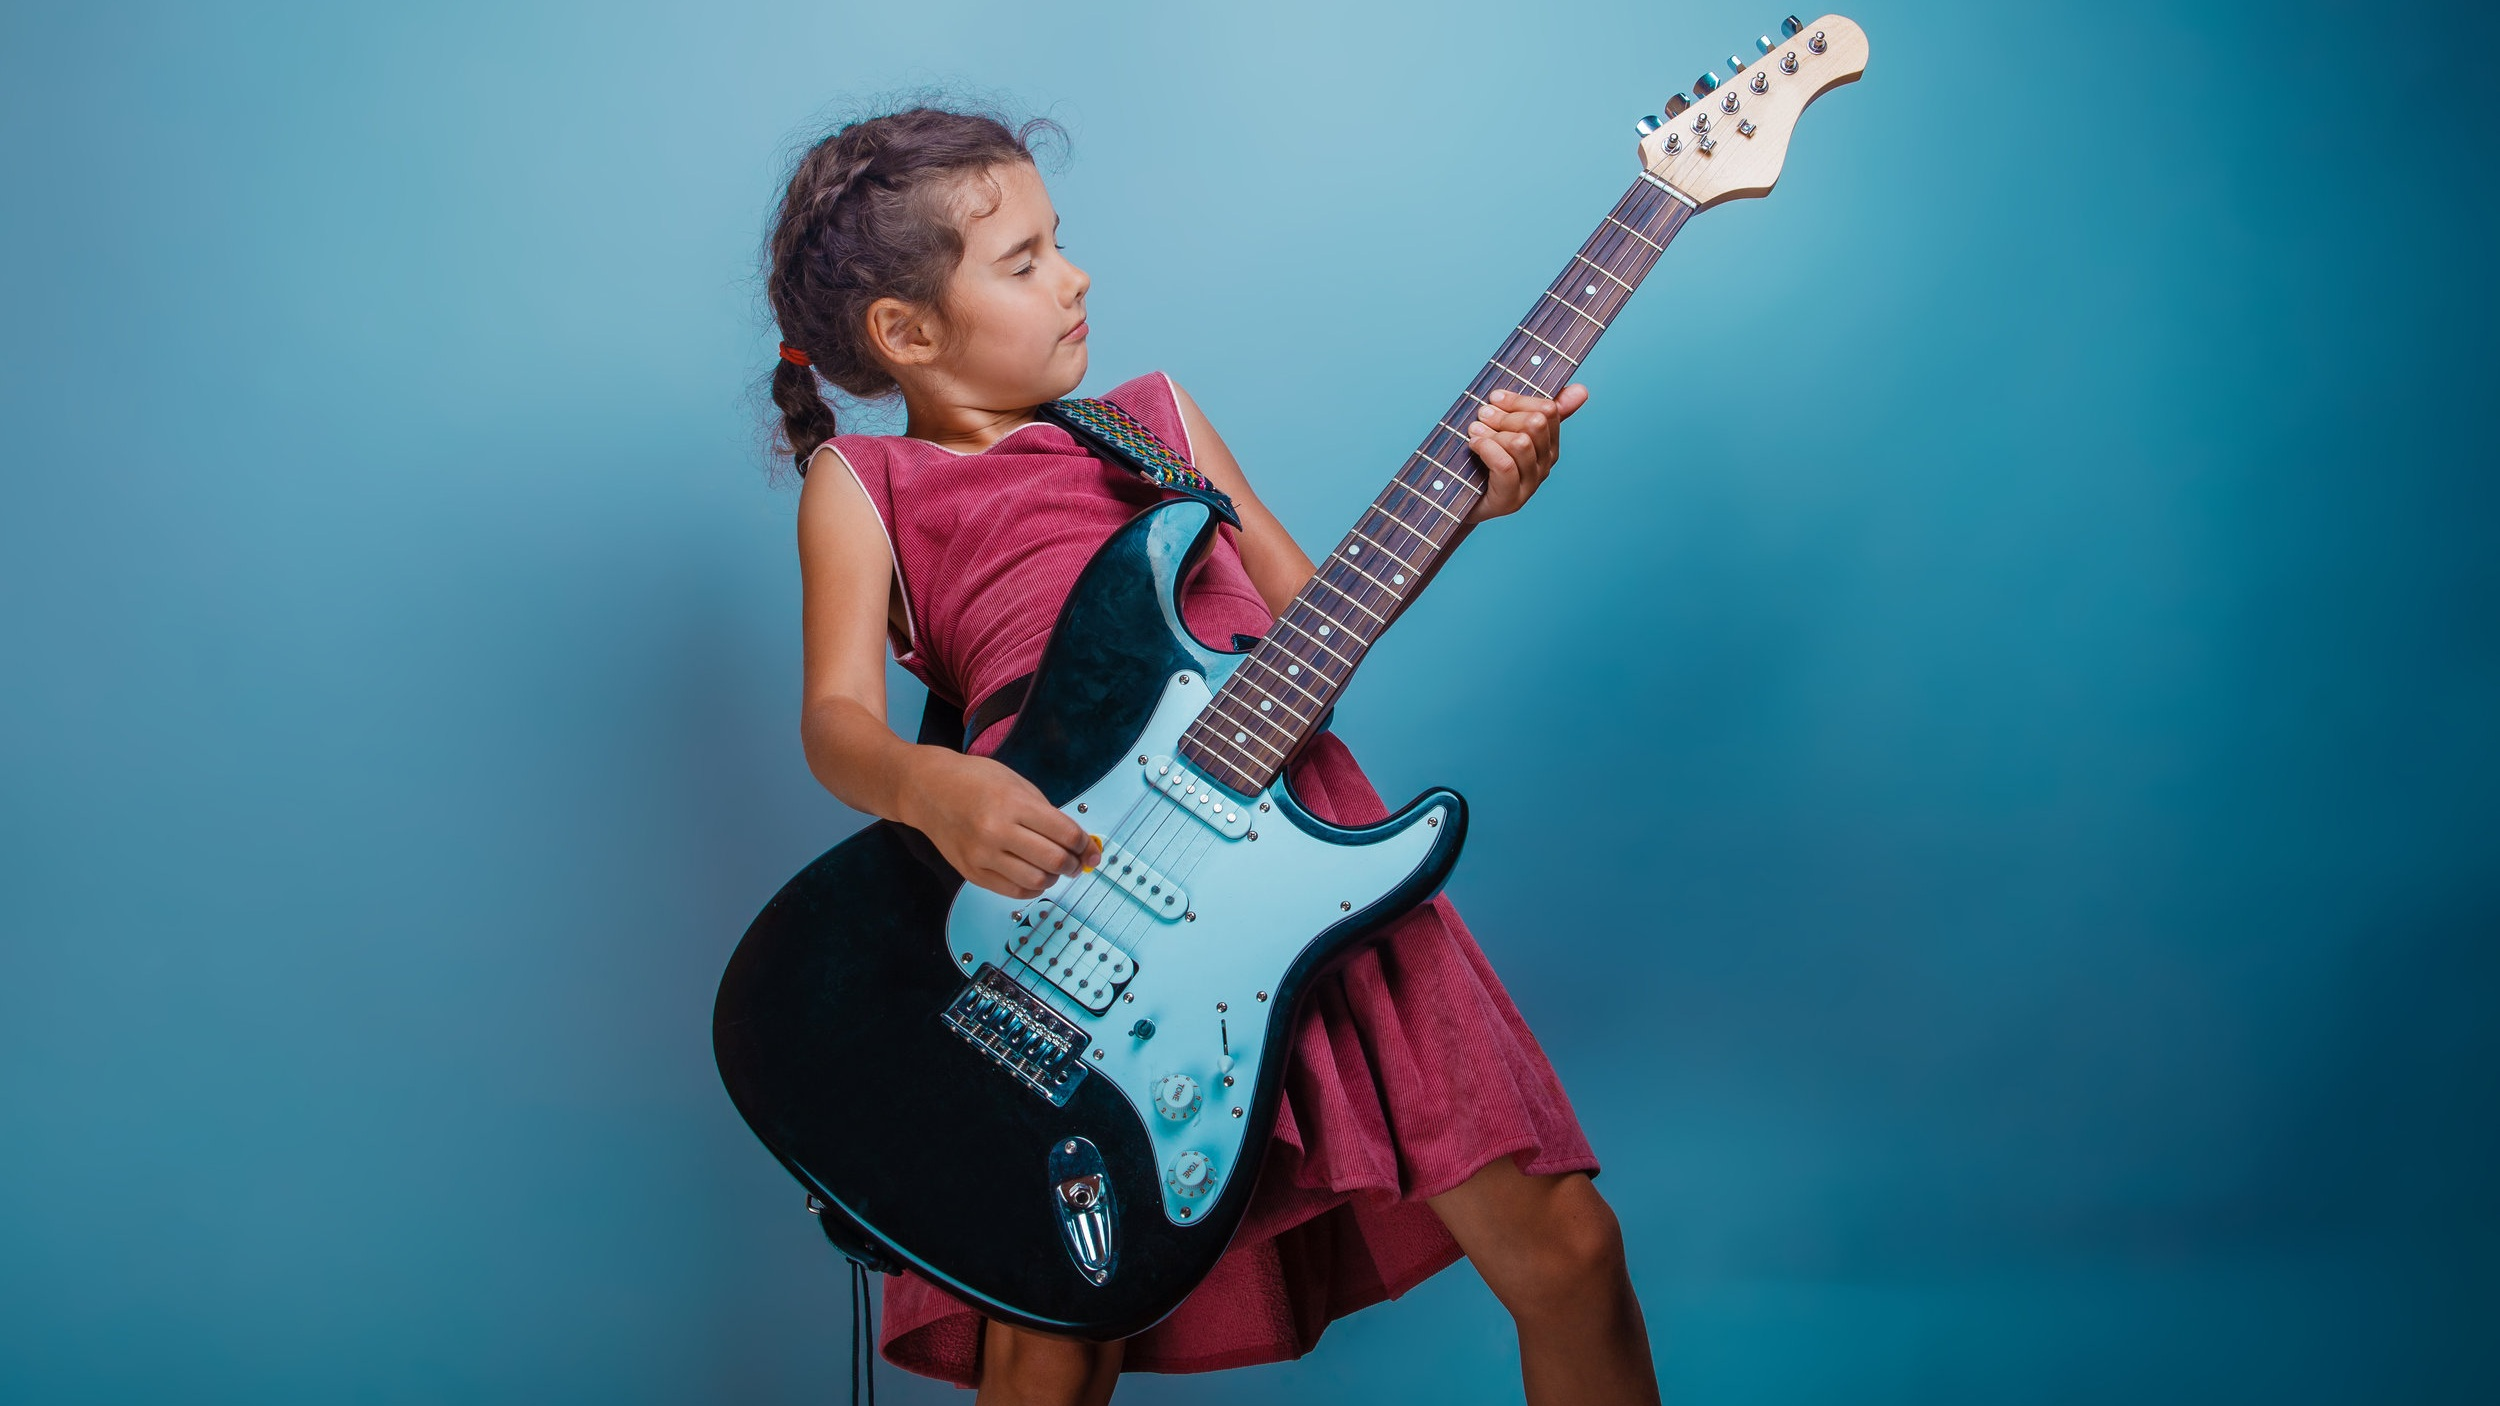 ROCK N ROLL WEEK - JUNE 24TH - 27THHALF DAY CAMPPreK & Kids Camps